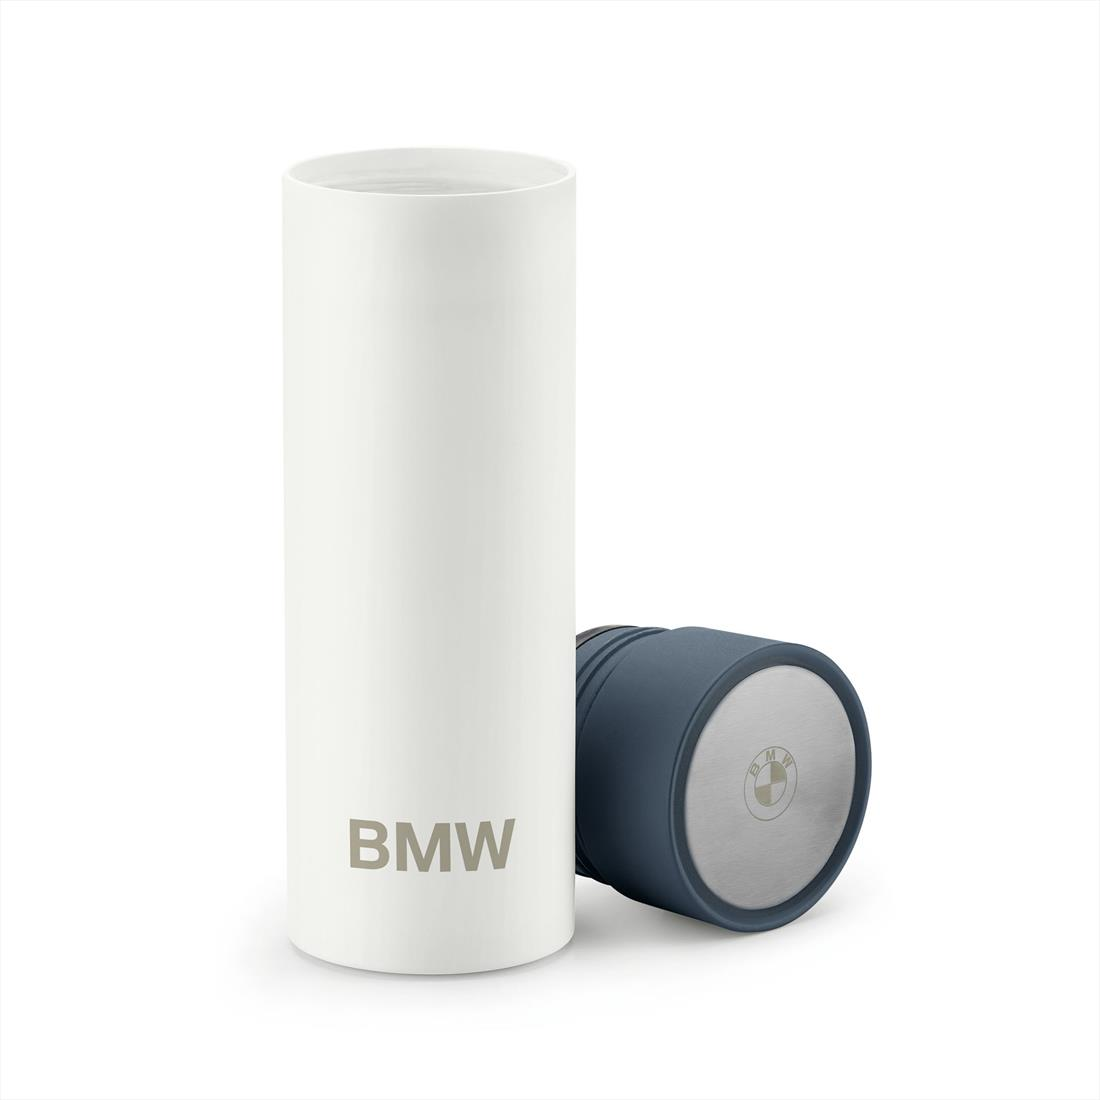 BMW DESIGN THERMOS CUP